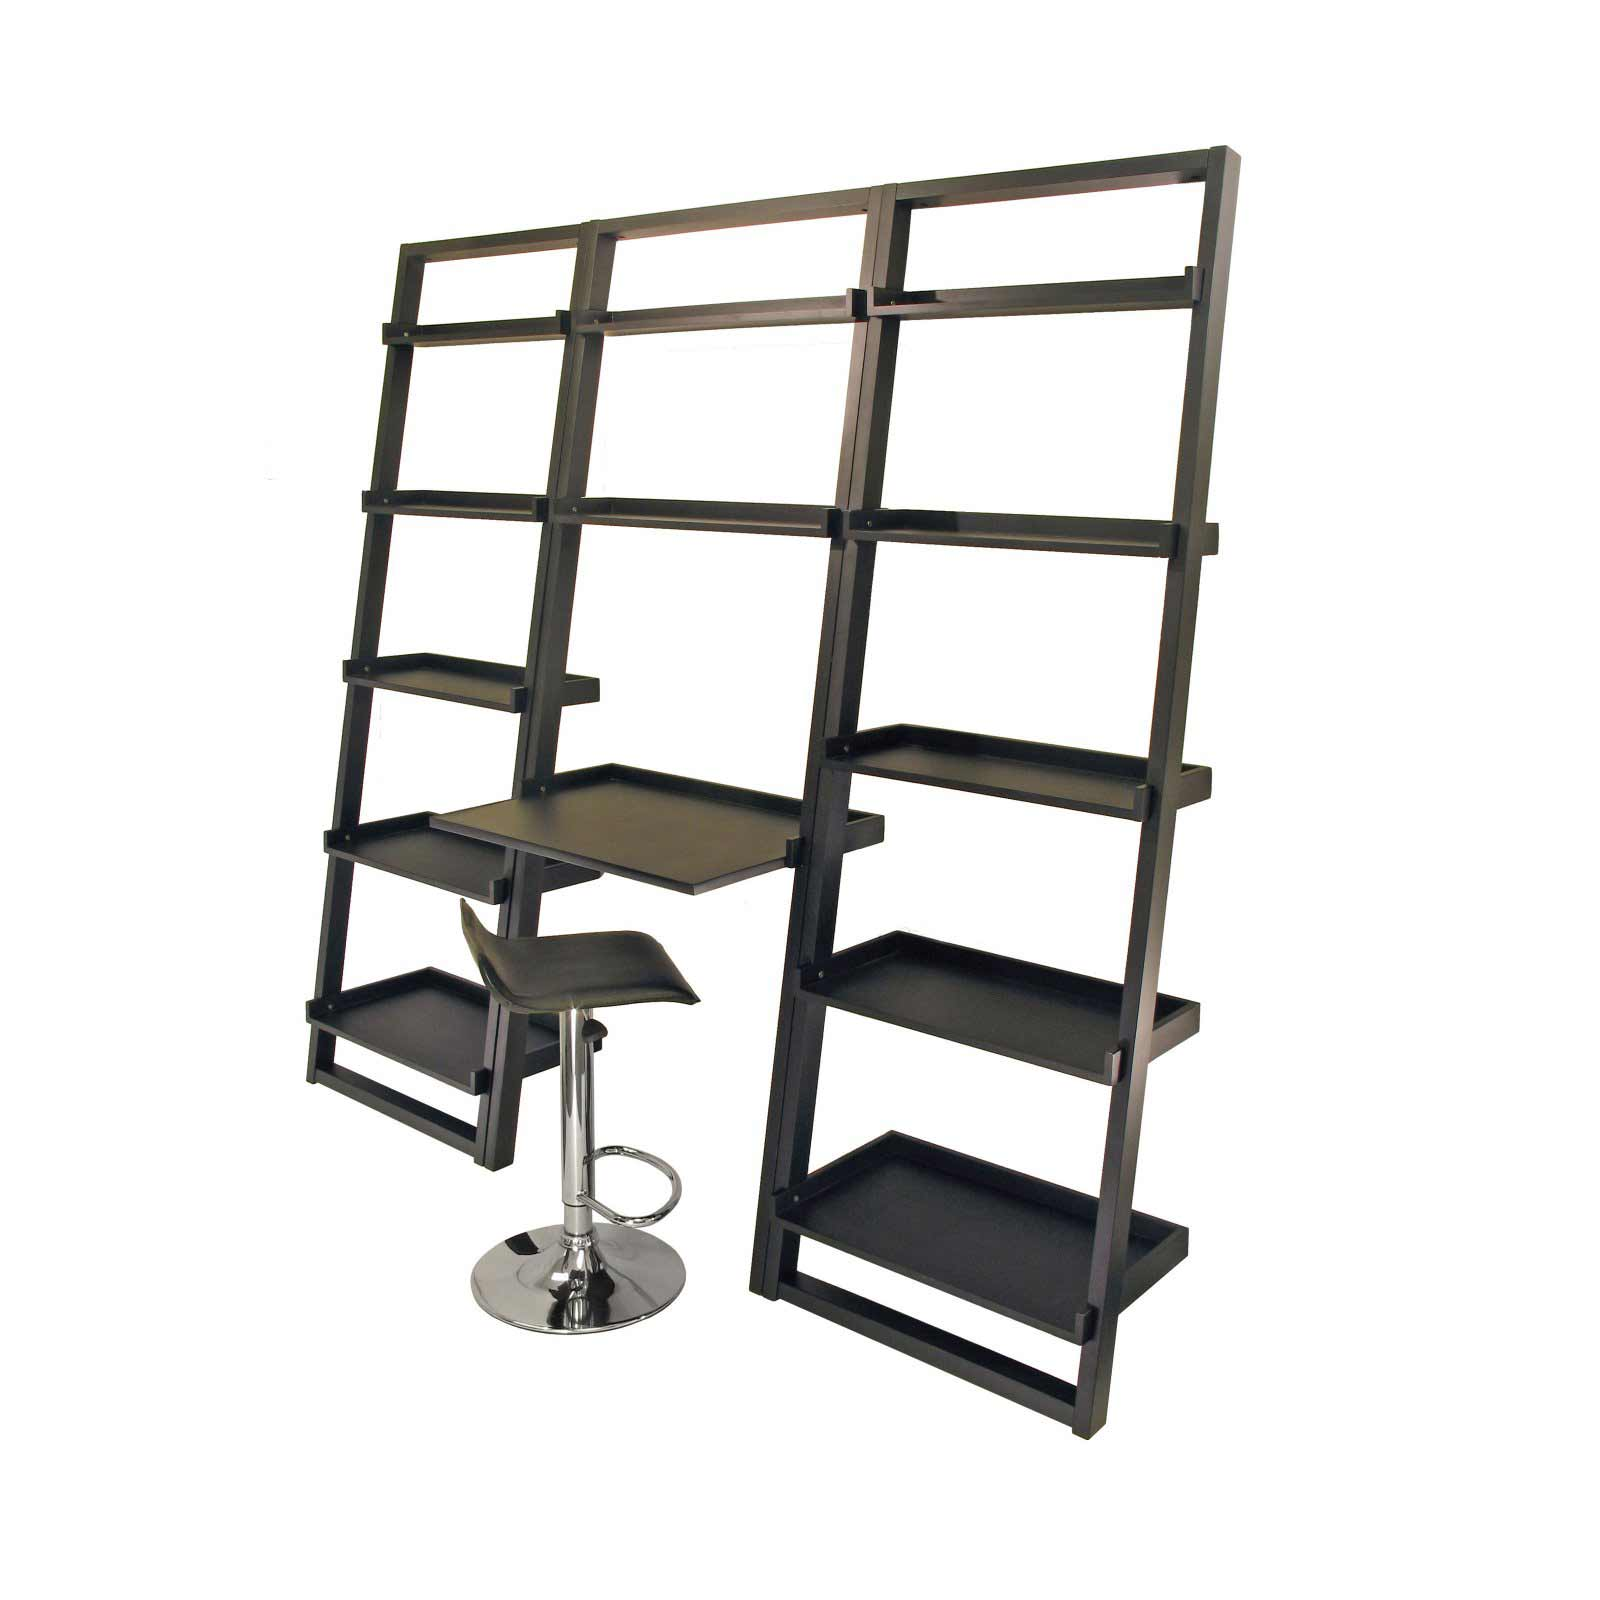 Leaning Wall Desk System Loft Black Shelves With Work